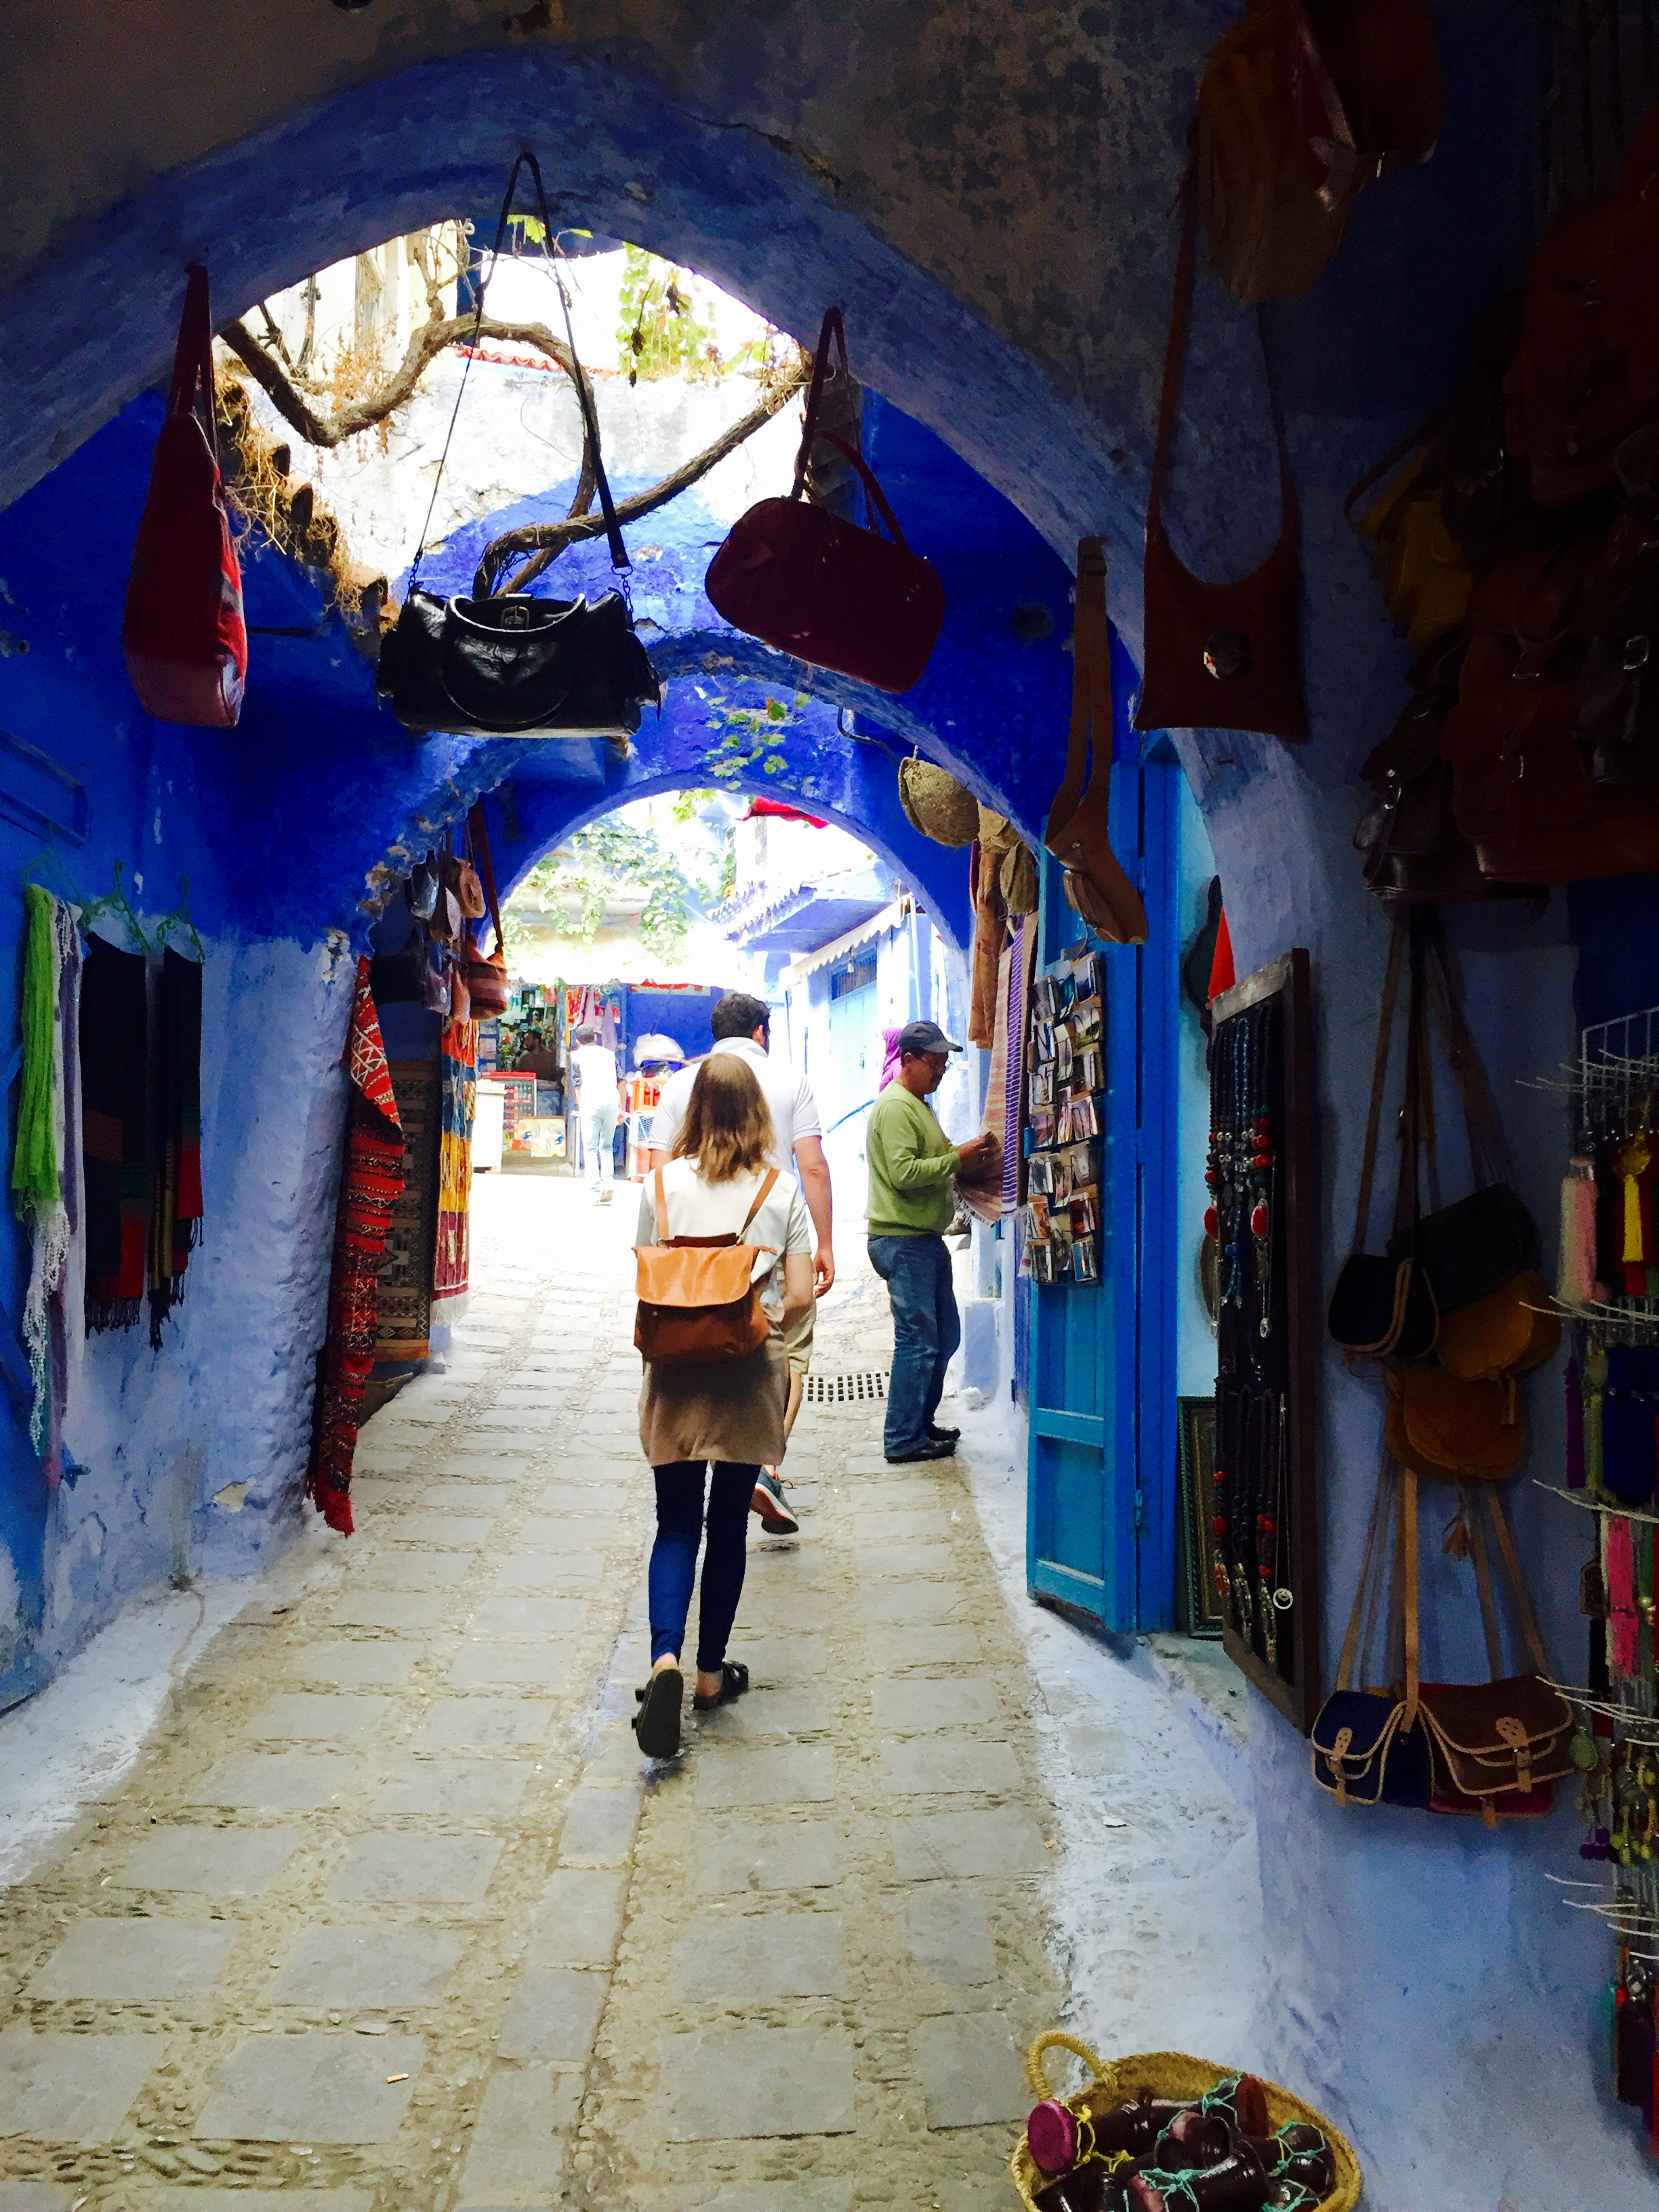 Beautifully perched beneath the peaks of the Rif mountains, Chefchaouen is an incredible, blue-washed mountain village and certainly one of the prettiest ...